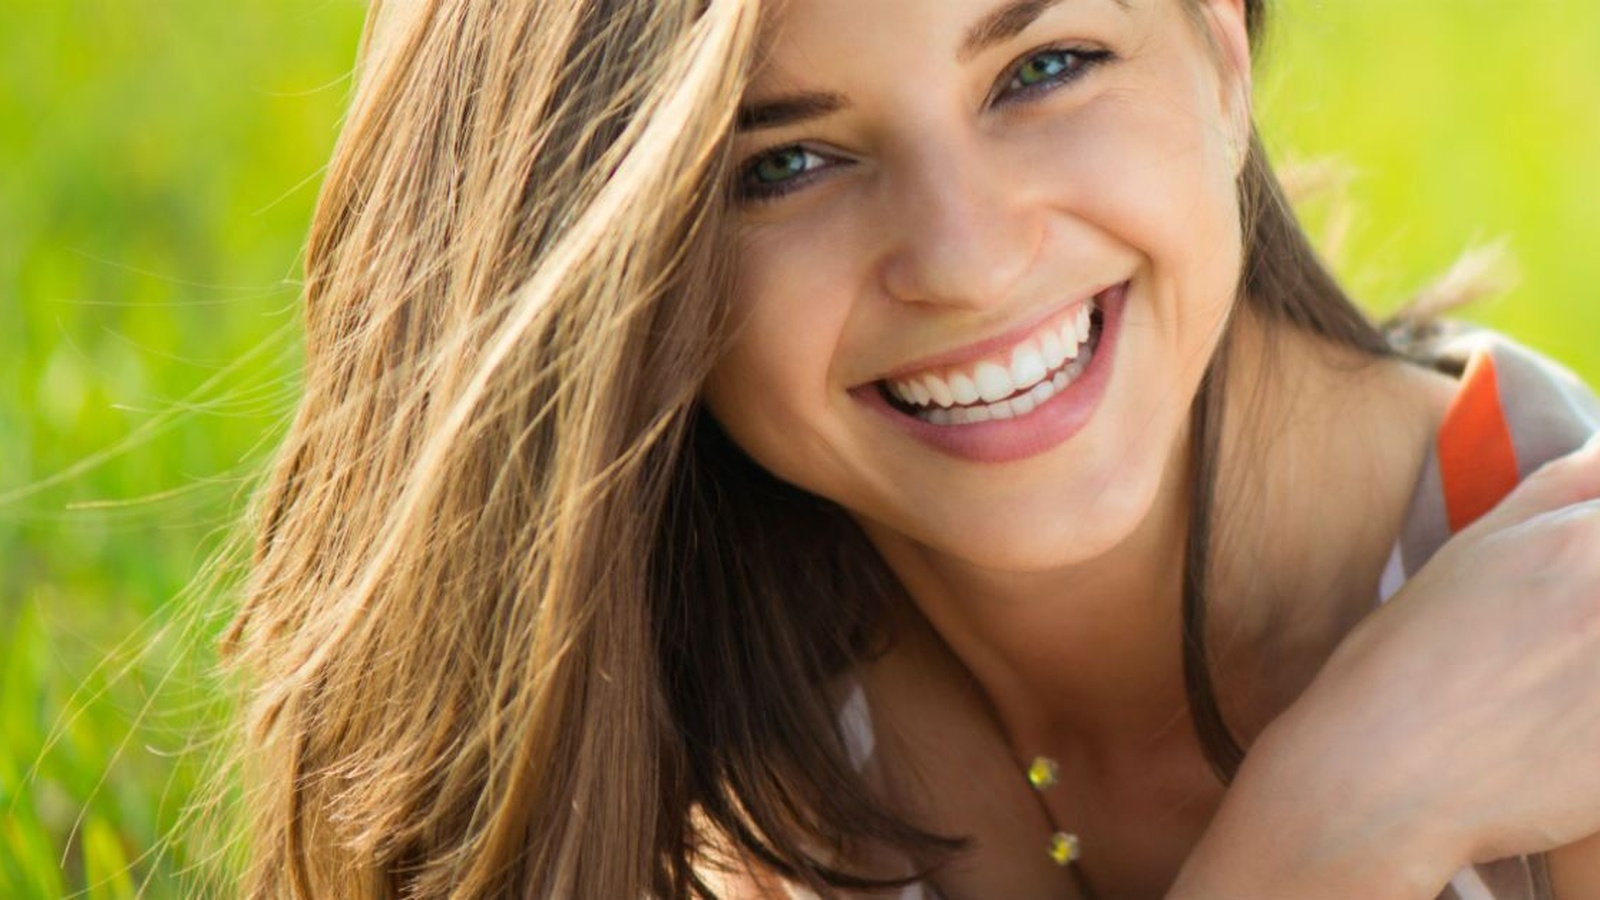 6 Foods That Protect and Whiten Your Smile